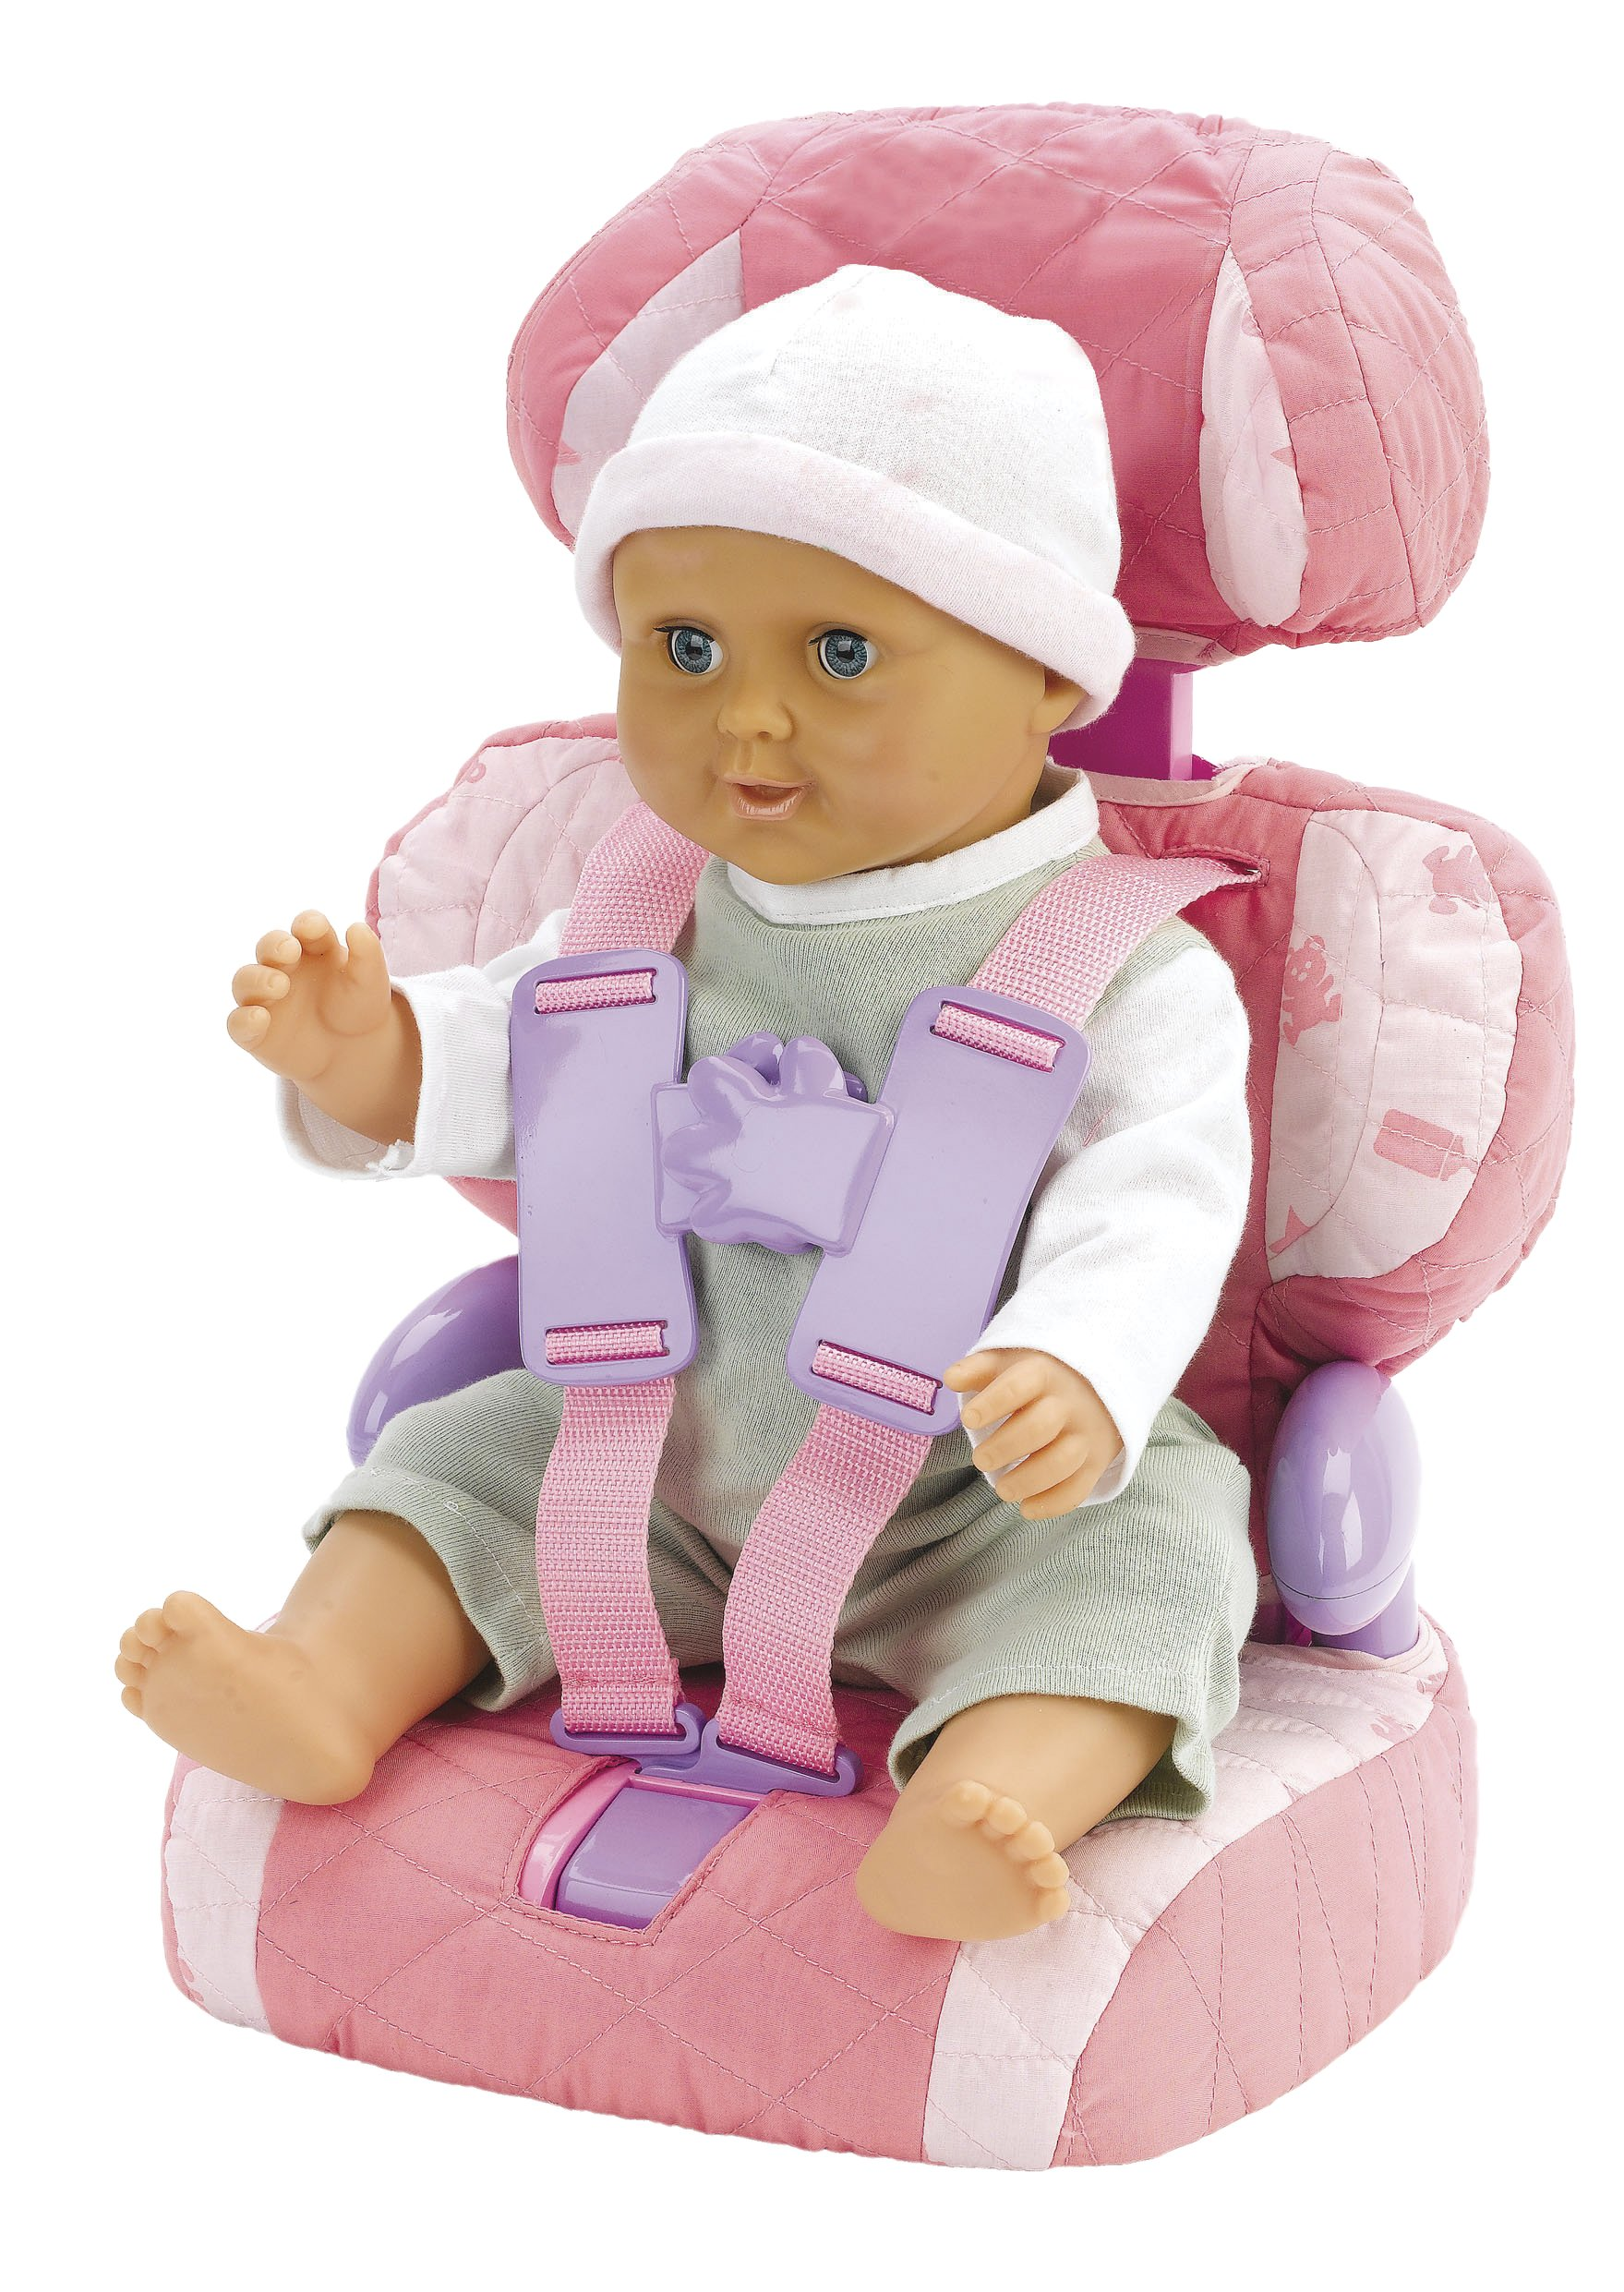 Casdon Baby Huggles Doll Car Booster Seat - Bring Your Favorite Friend for a Ride!